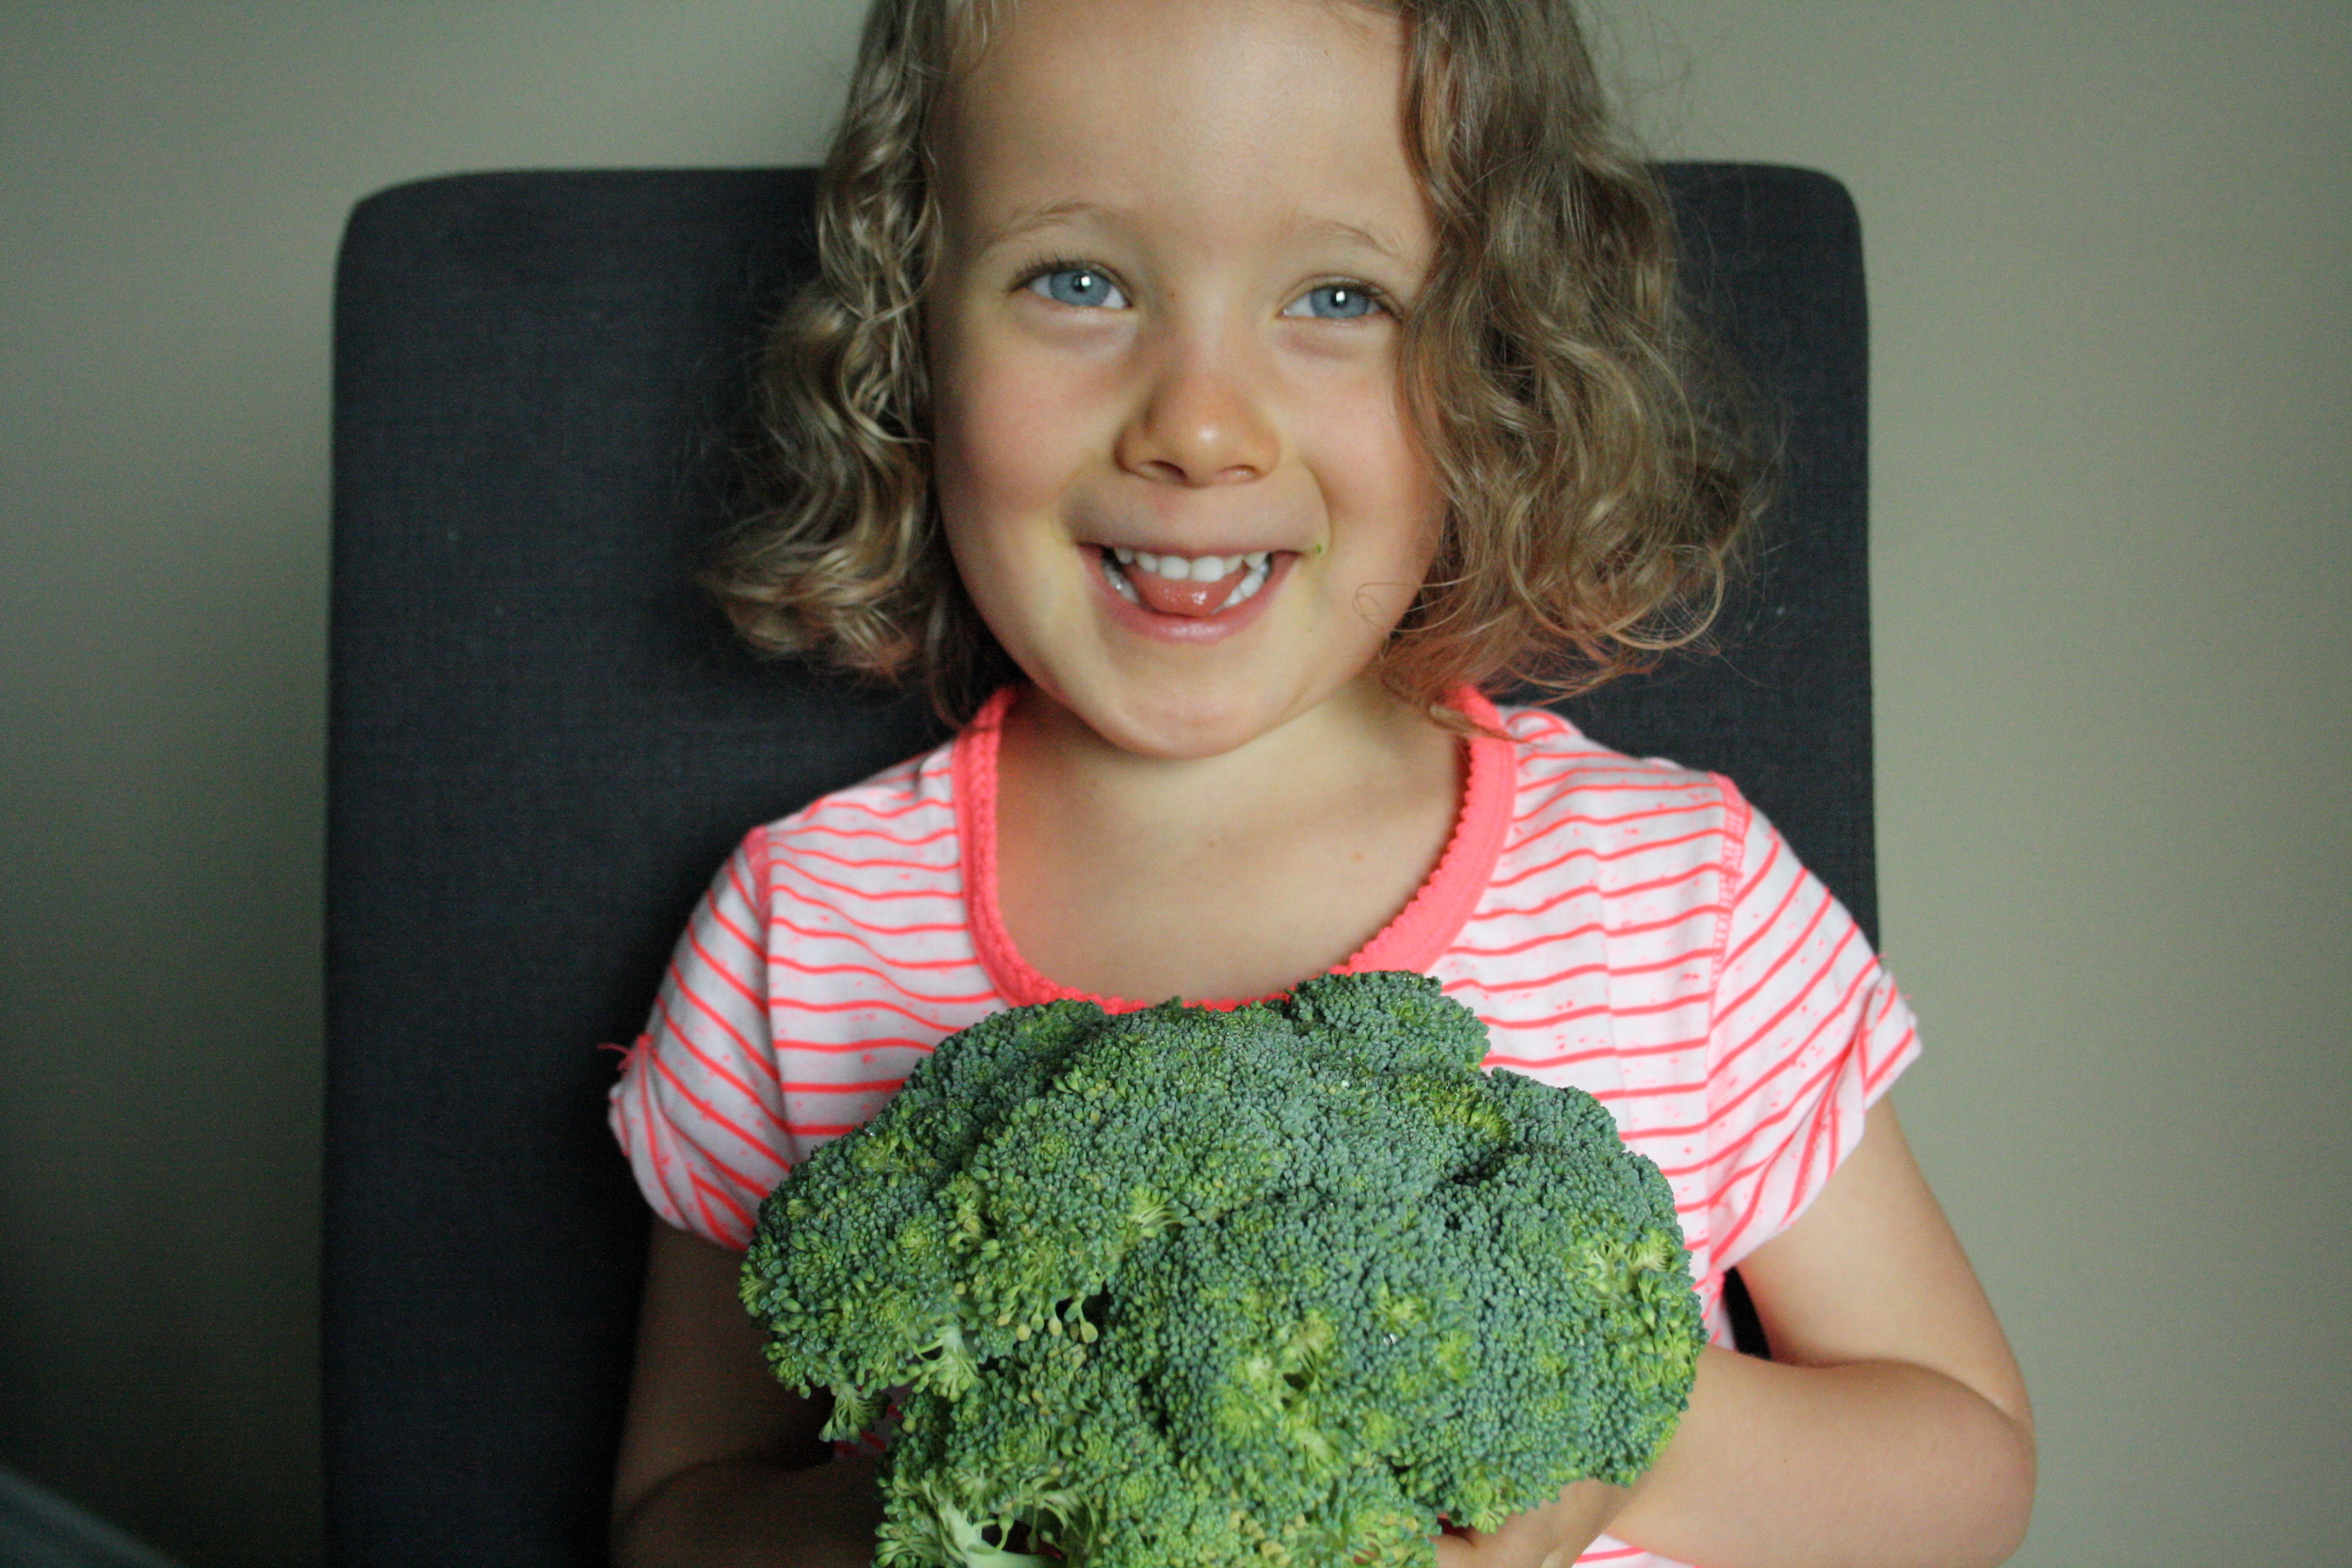 6-Ways-to-Help-Your-Child-Have-a-Healthy-Relationship-with-Food.jpg